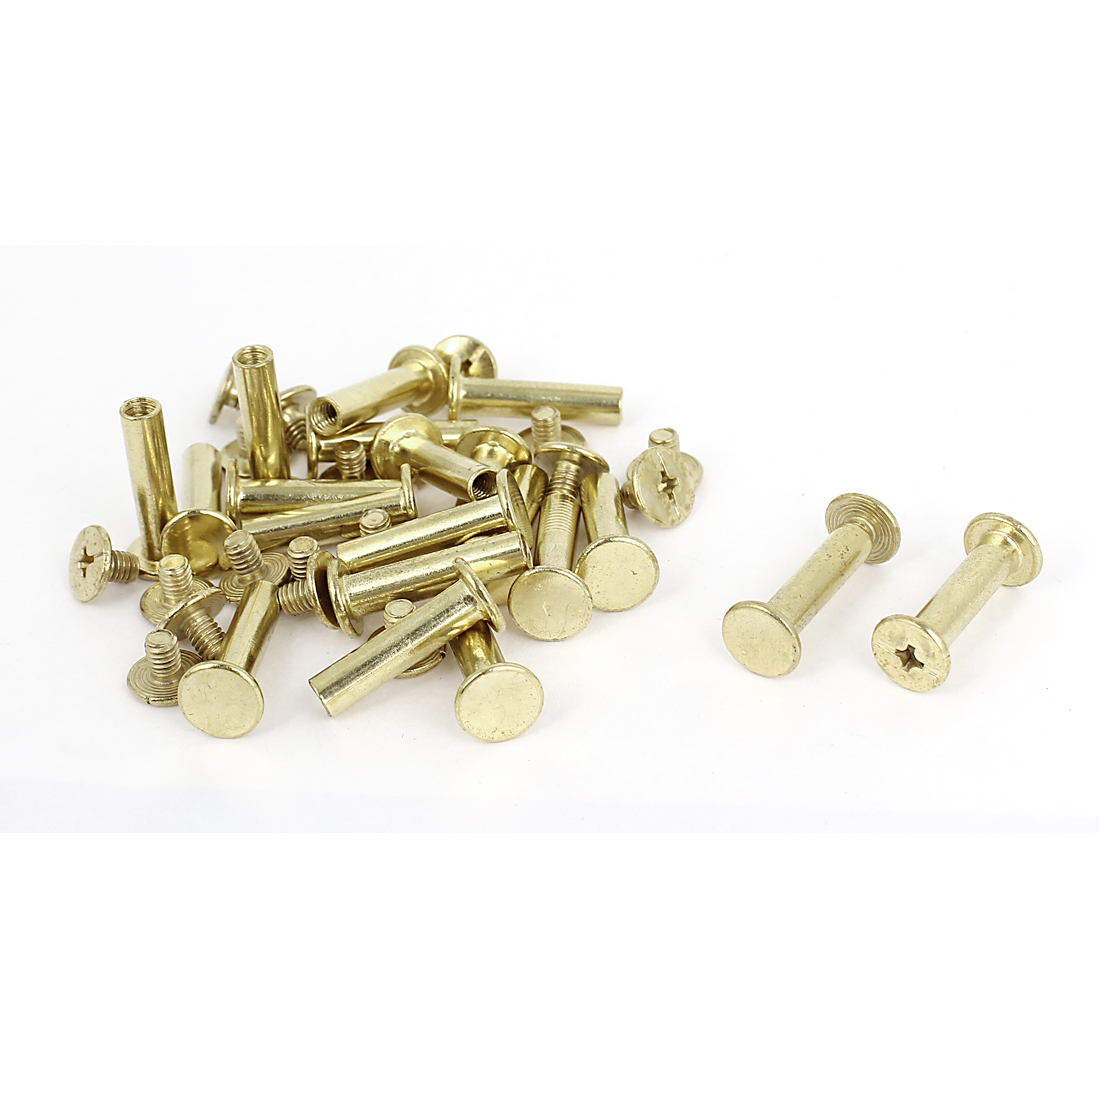 Brass Plated 5x20mm Binding Chicago Screw Post 20pcs for Leather Scrapbook